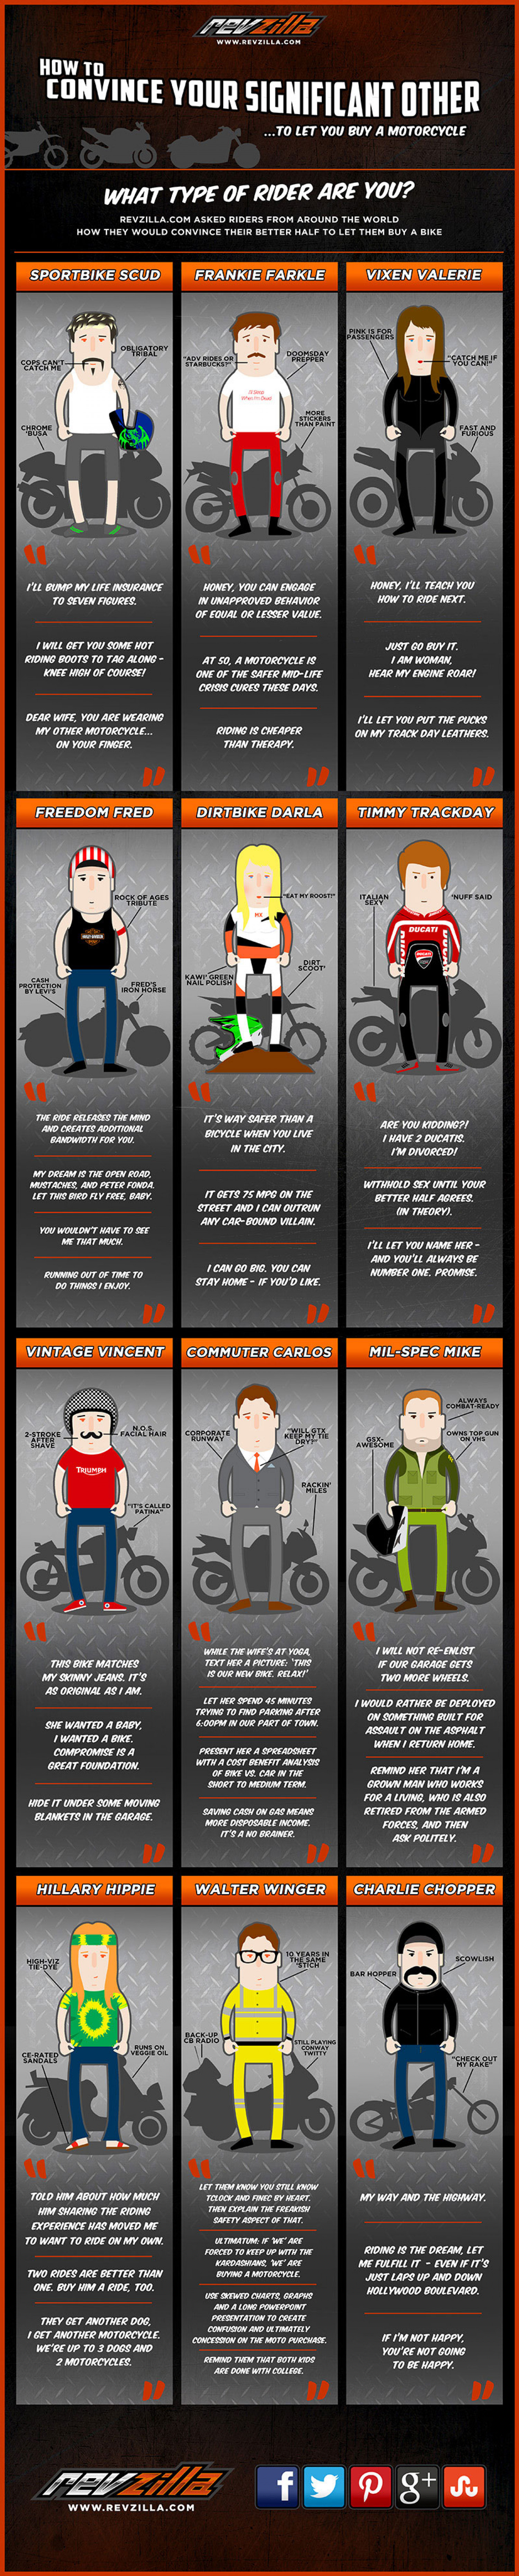 How to Convince Your Significant Other to Let You Buy A Motorcycle Infographic